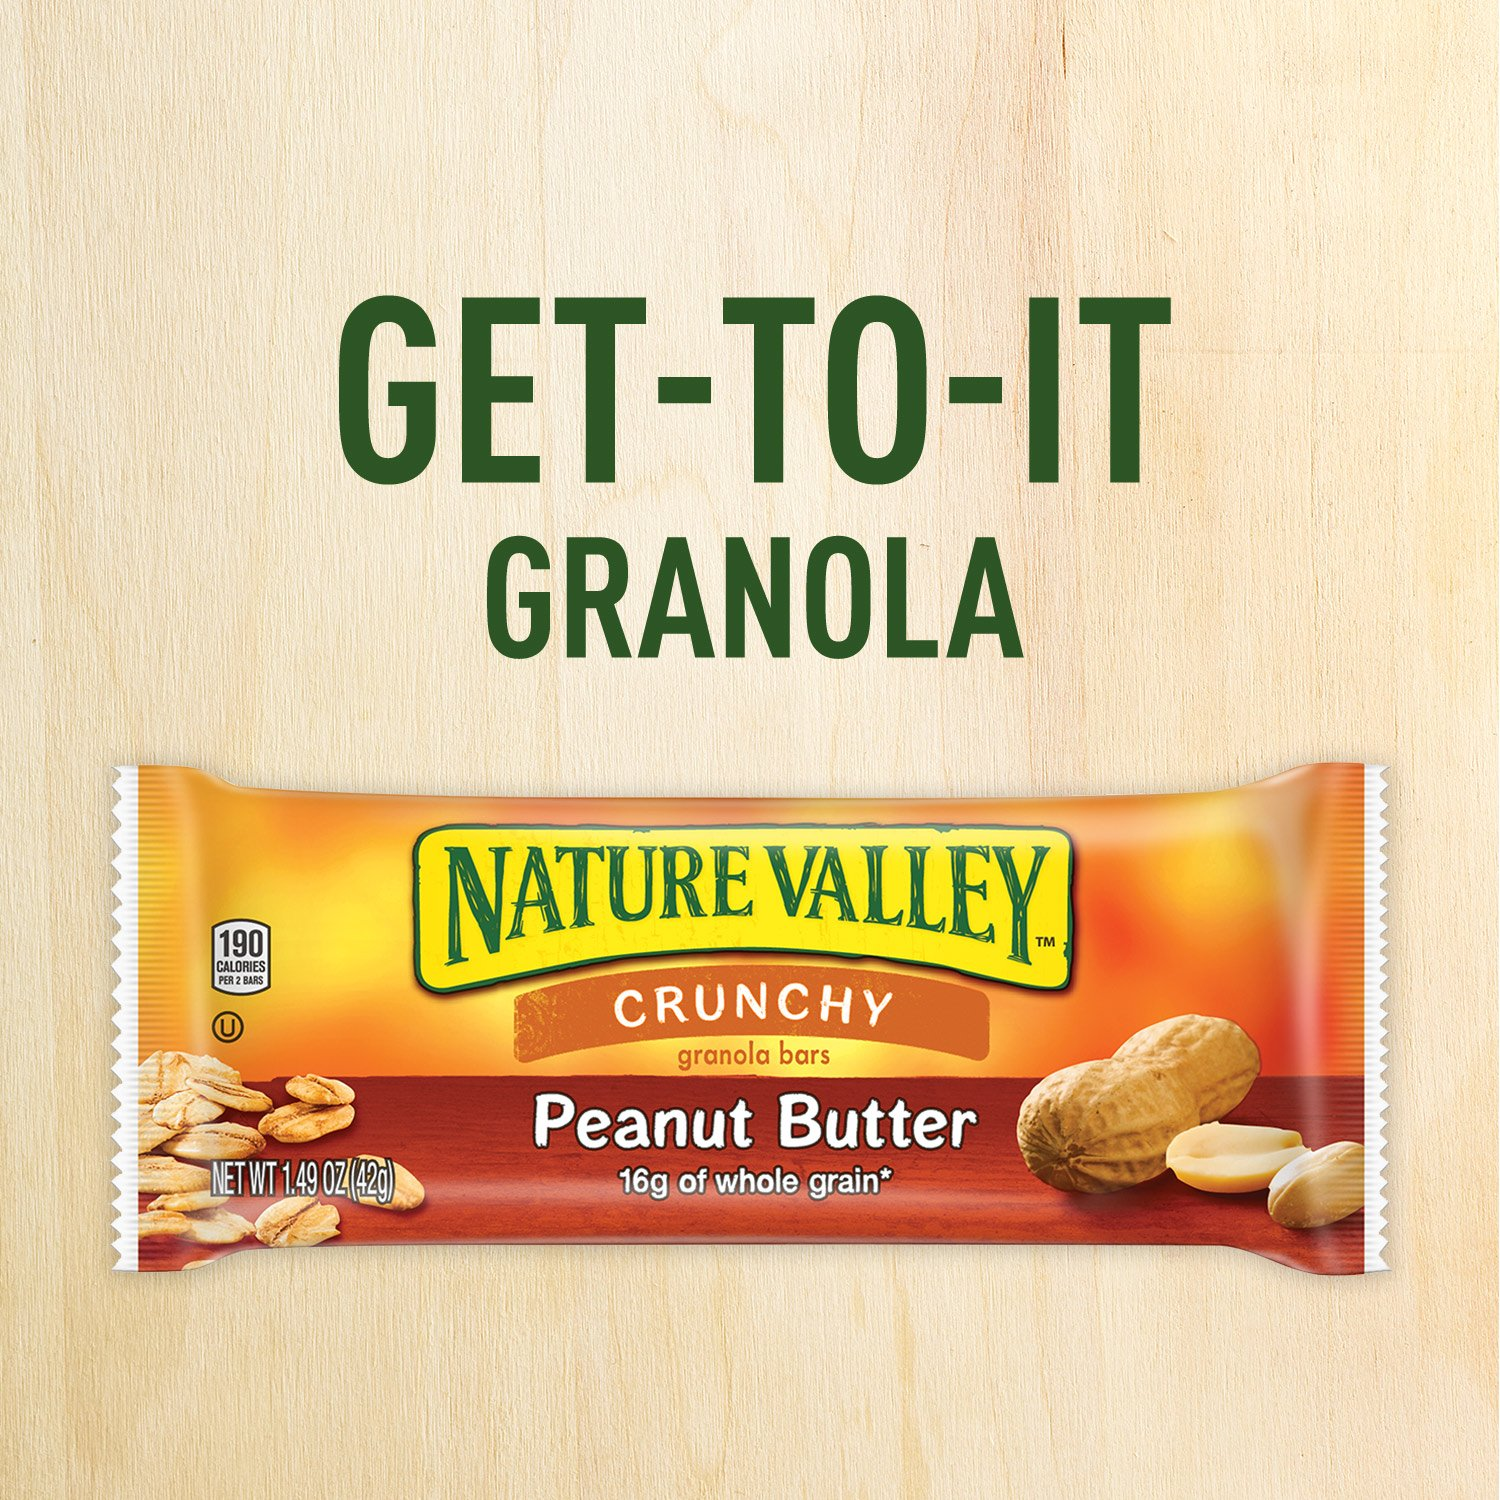 Nature Valley Granola Bars, Crunchy, Peanut Butter, 6 Pouches - 1.49 oz, 2-Bars Per Pouch (Pack of 6) by Nature Valley (Image #5)